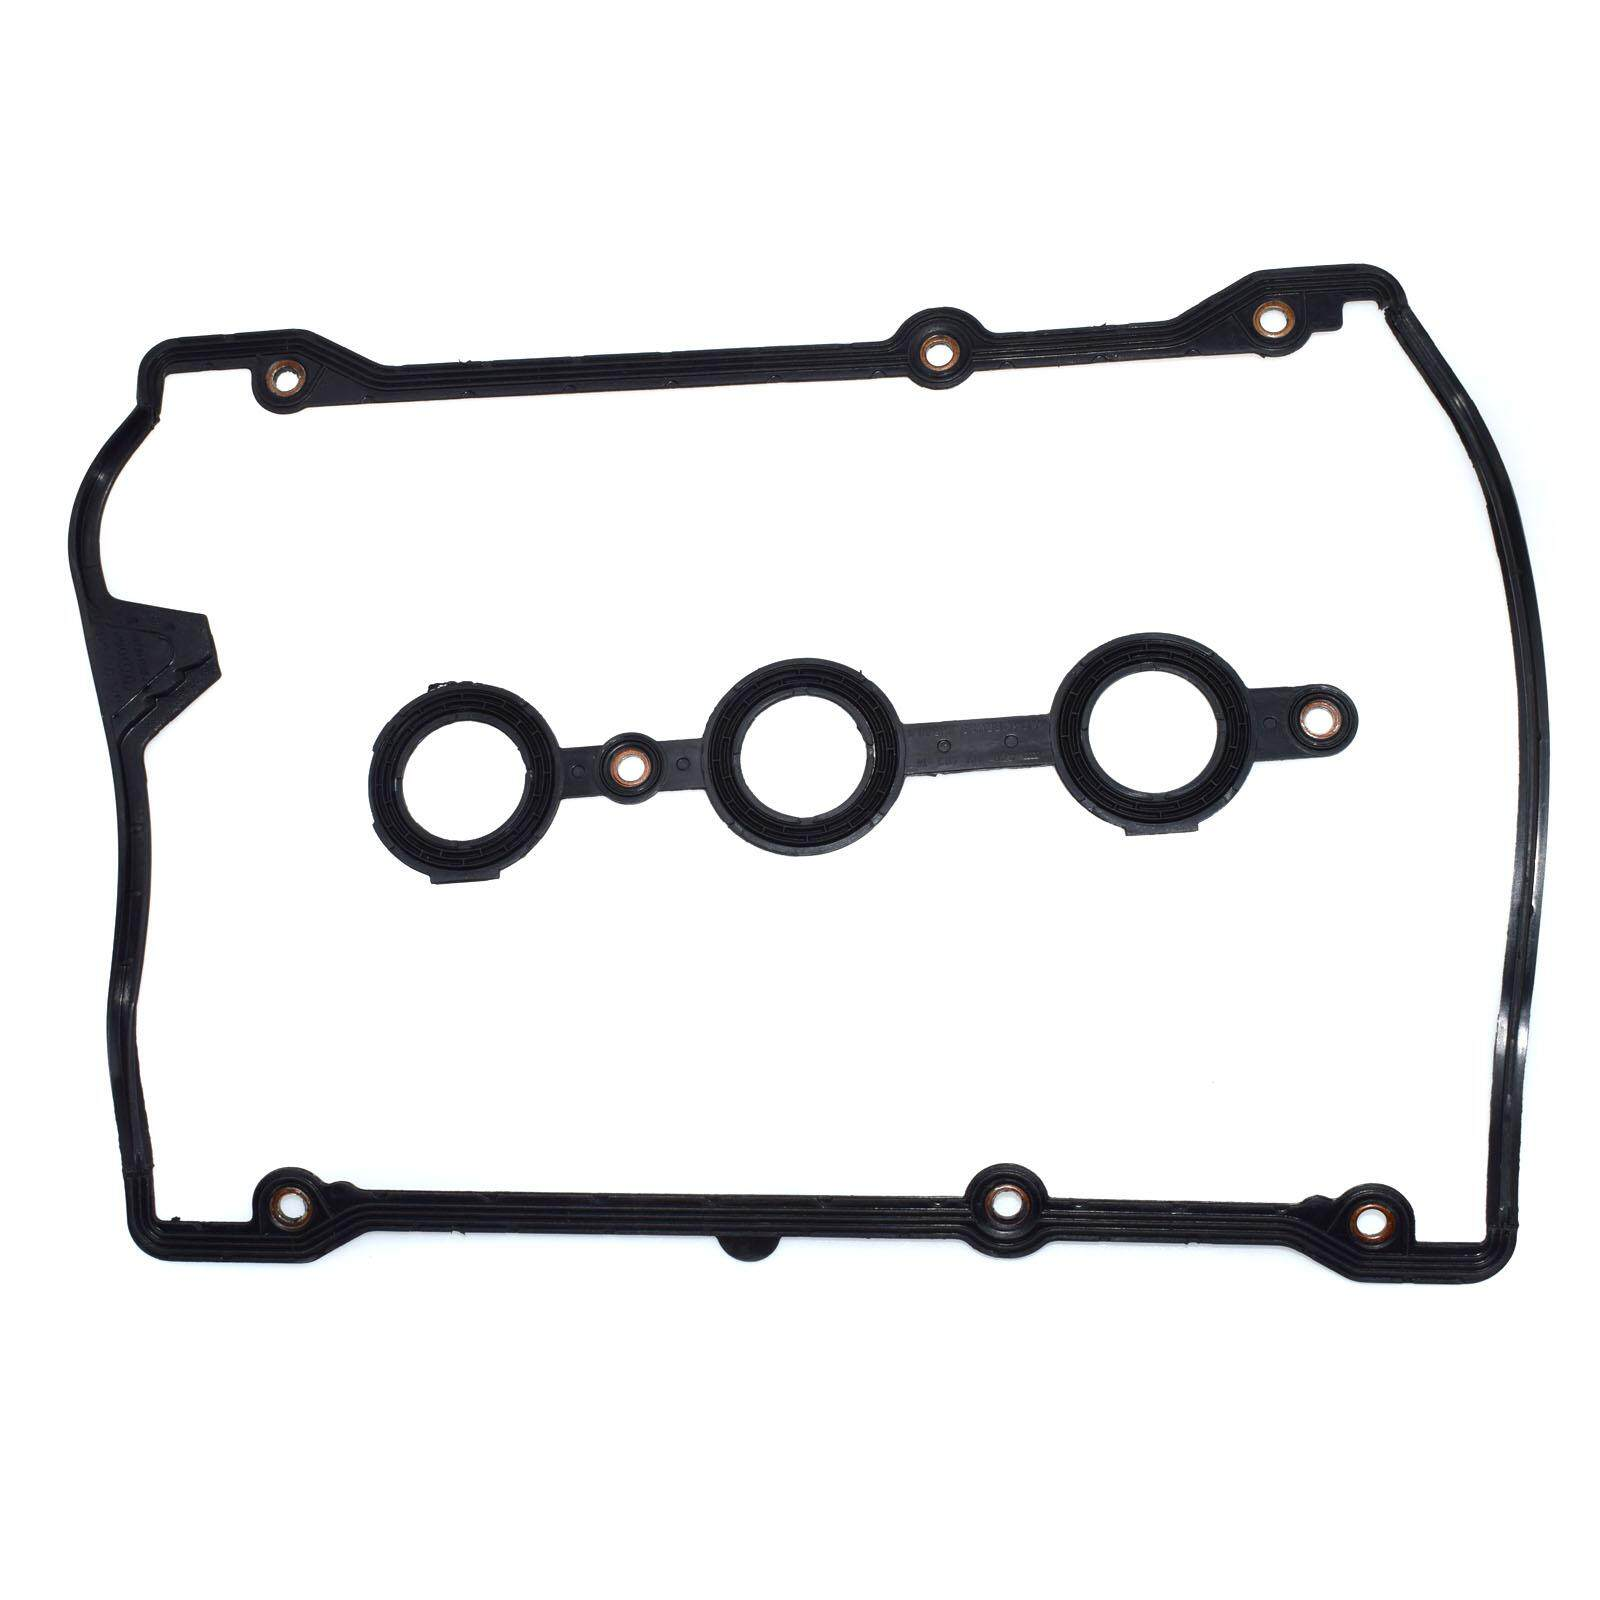 hight resolution of new valve cover gasket cylinder head cover for audi a6 a4 allroad vw passat skoda superb